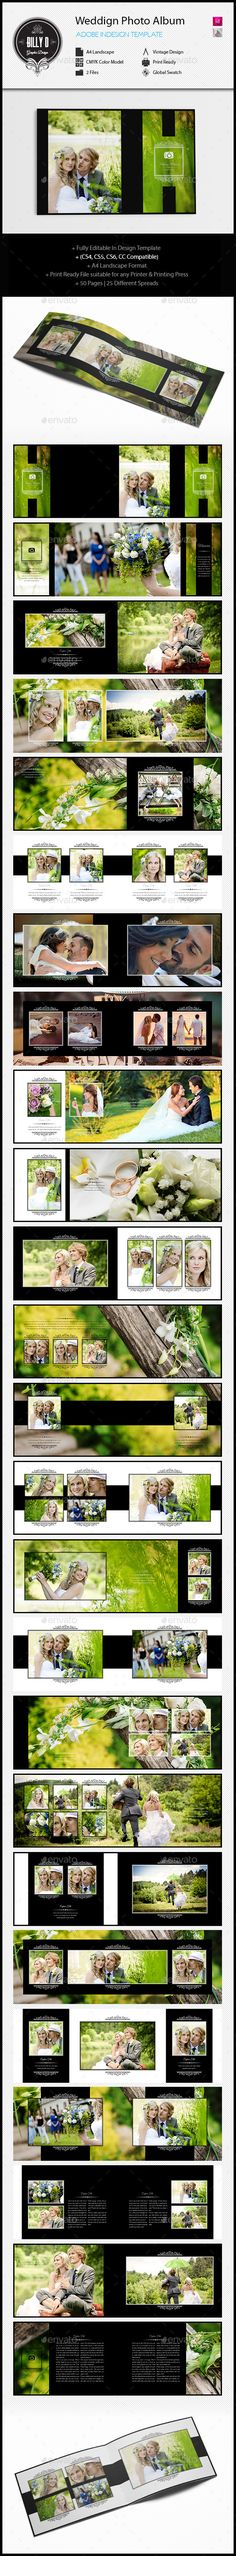 #Wedding Photo Album Template A - Photo Albums Print Templates Download here: https://graphicriver.net/item/wedding-photo-album-template-a/12751809?ref=classicdesignp